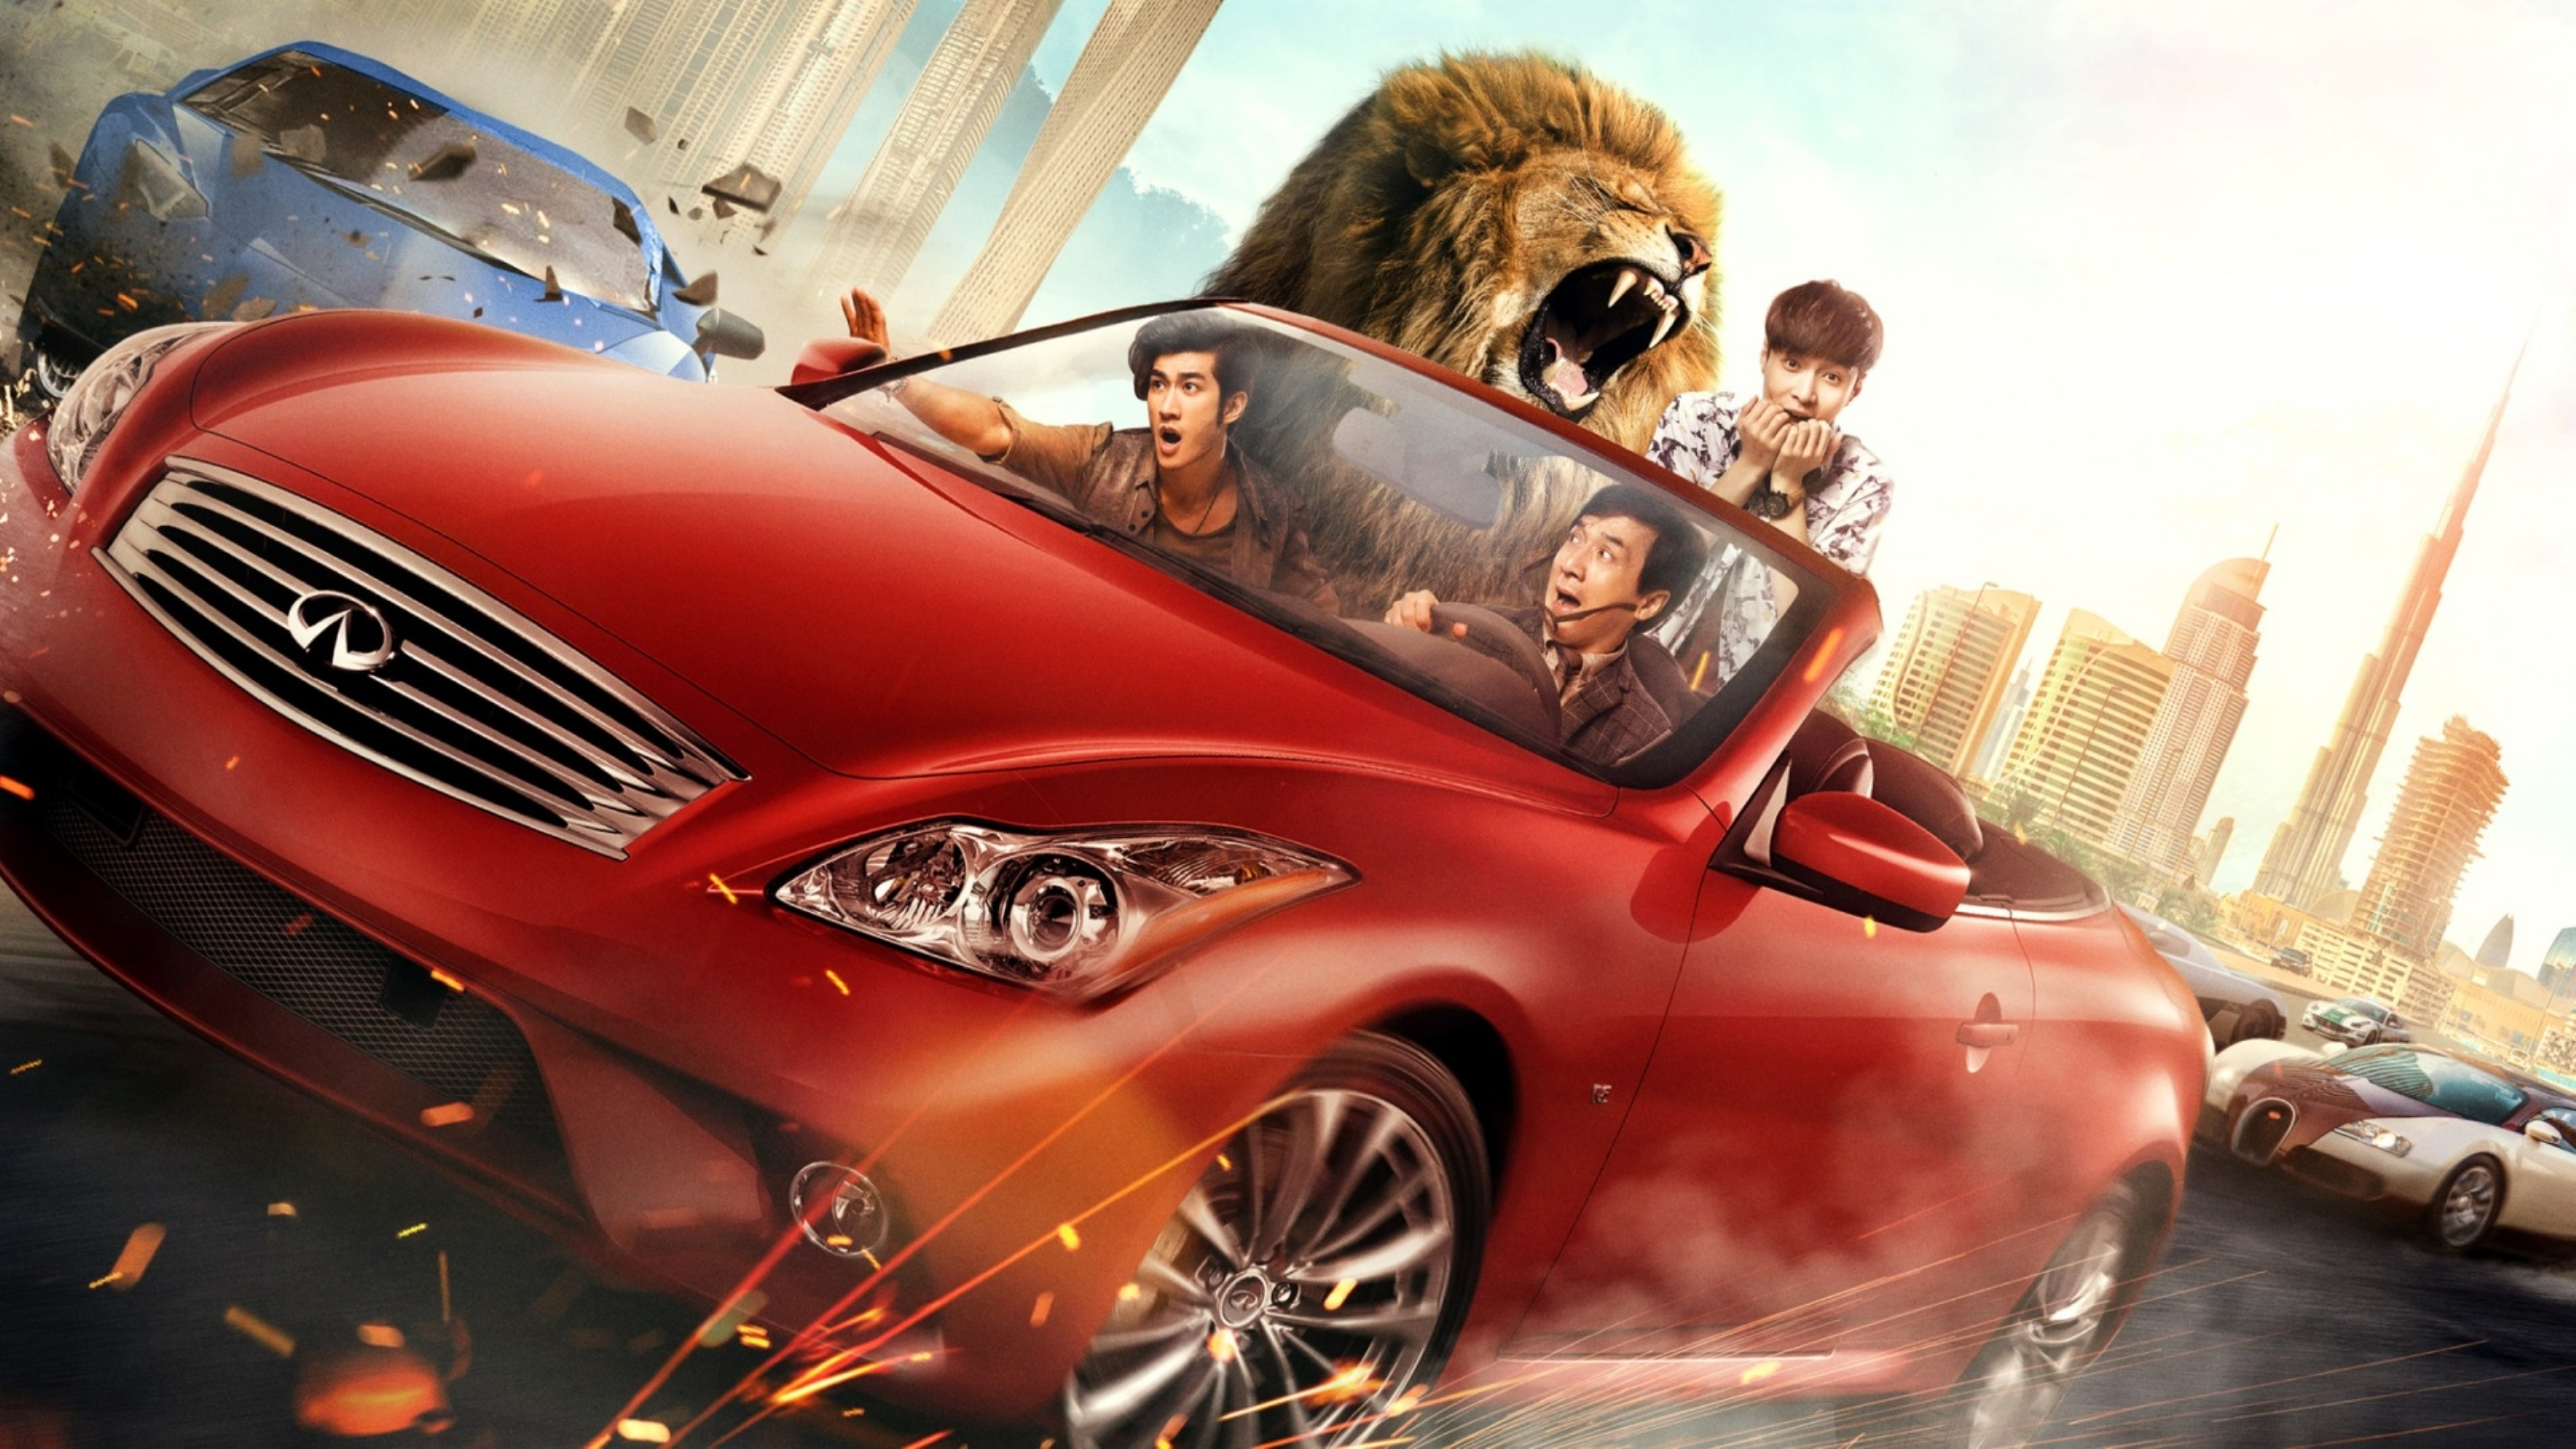 1360x768 Kung Fu Yoga 2017 Movie Laptop Hd Hd 4k Wallpapers Images Backgrounds Photos And Pictures